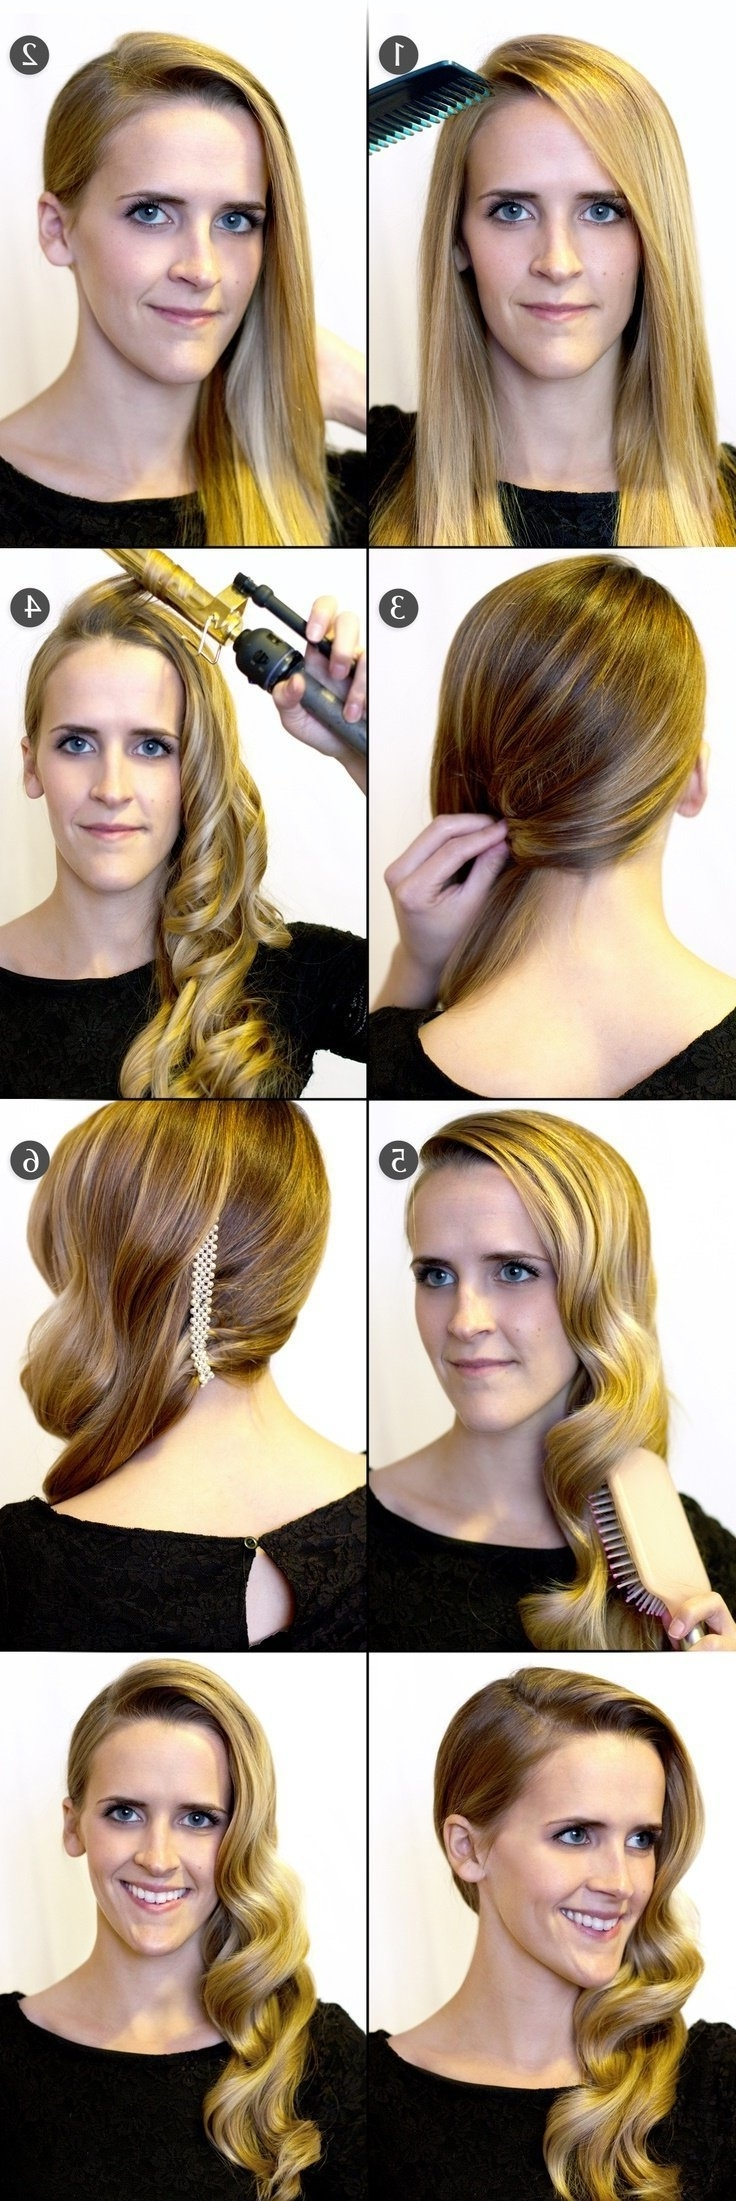 12 Simple & Easy Hairstyles For Girls Who Are Always In A Hurry With Regard To Latest 2 Minute Side Pony Hairstyles (View 1 of 20)